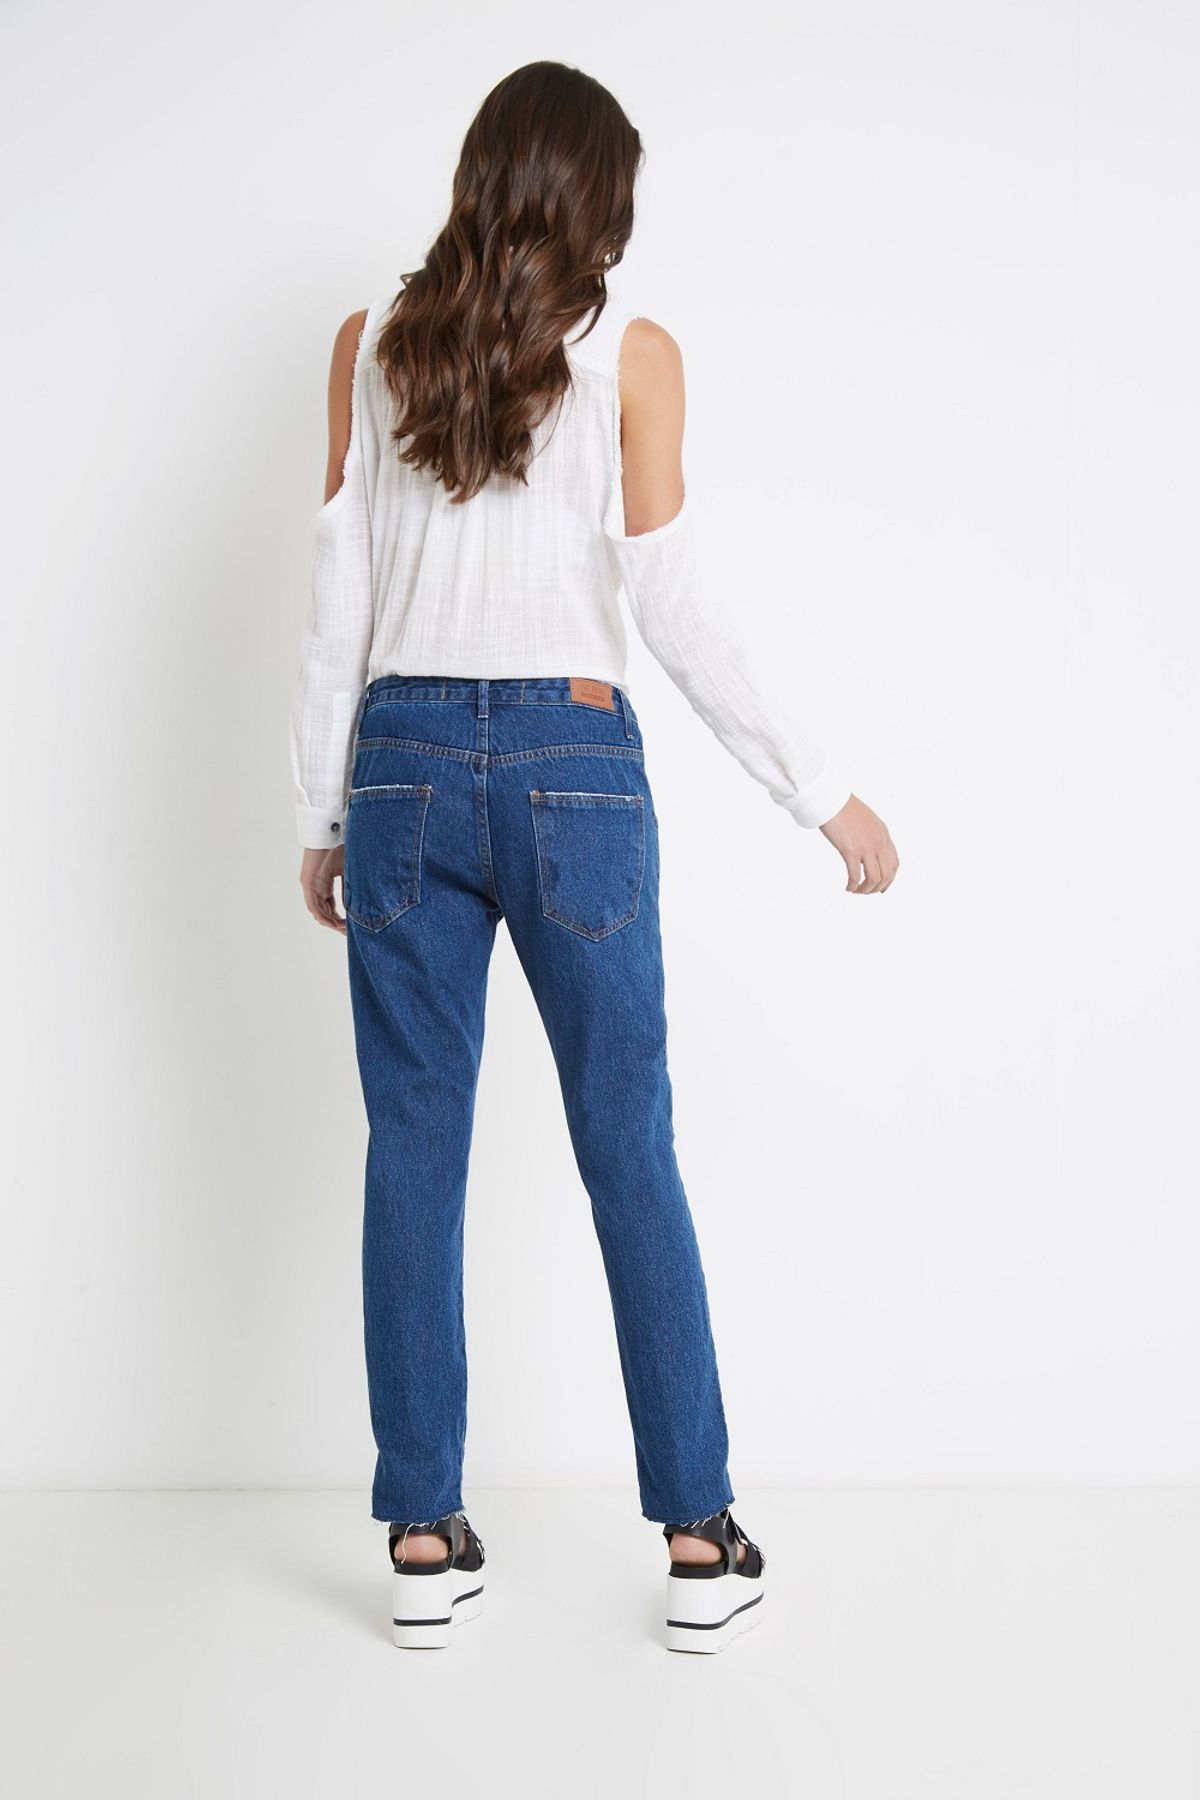 CALCA-JEANS-AVIAMENTO-LATERAL-020208570057-OH-BOY